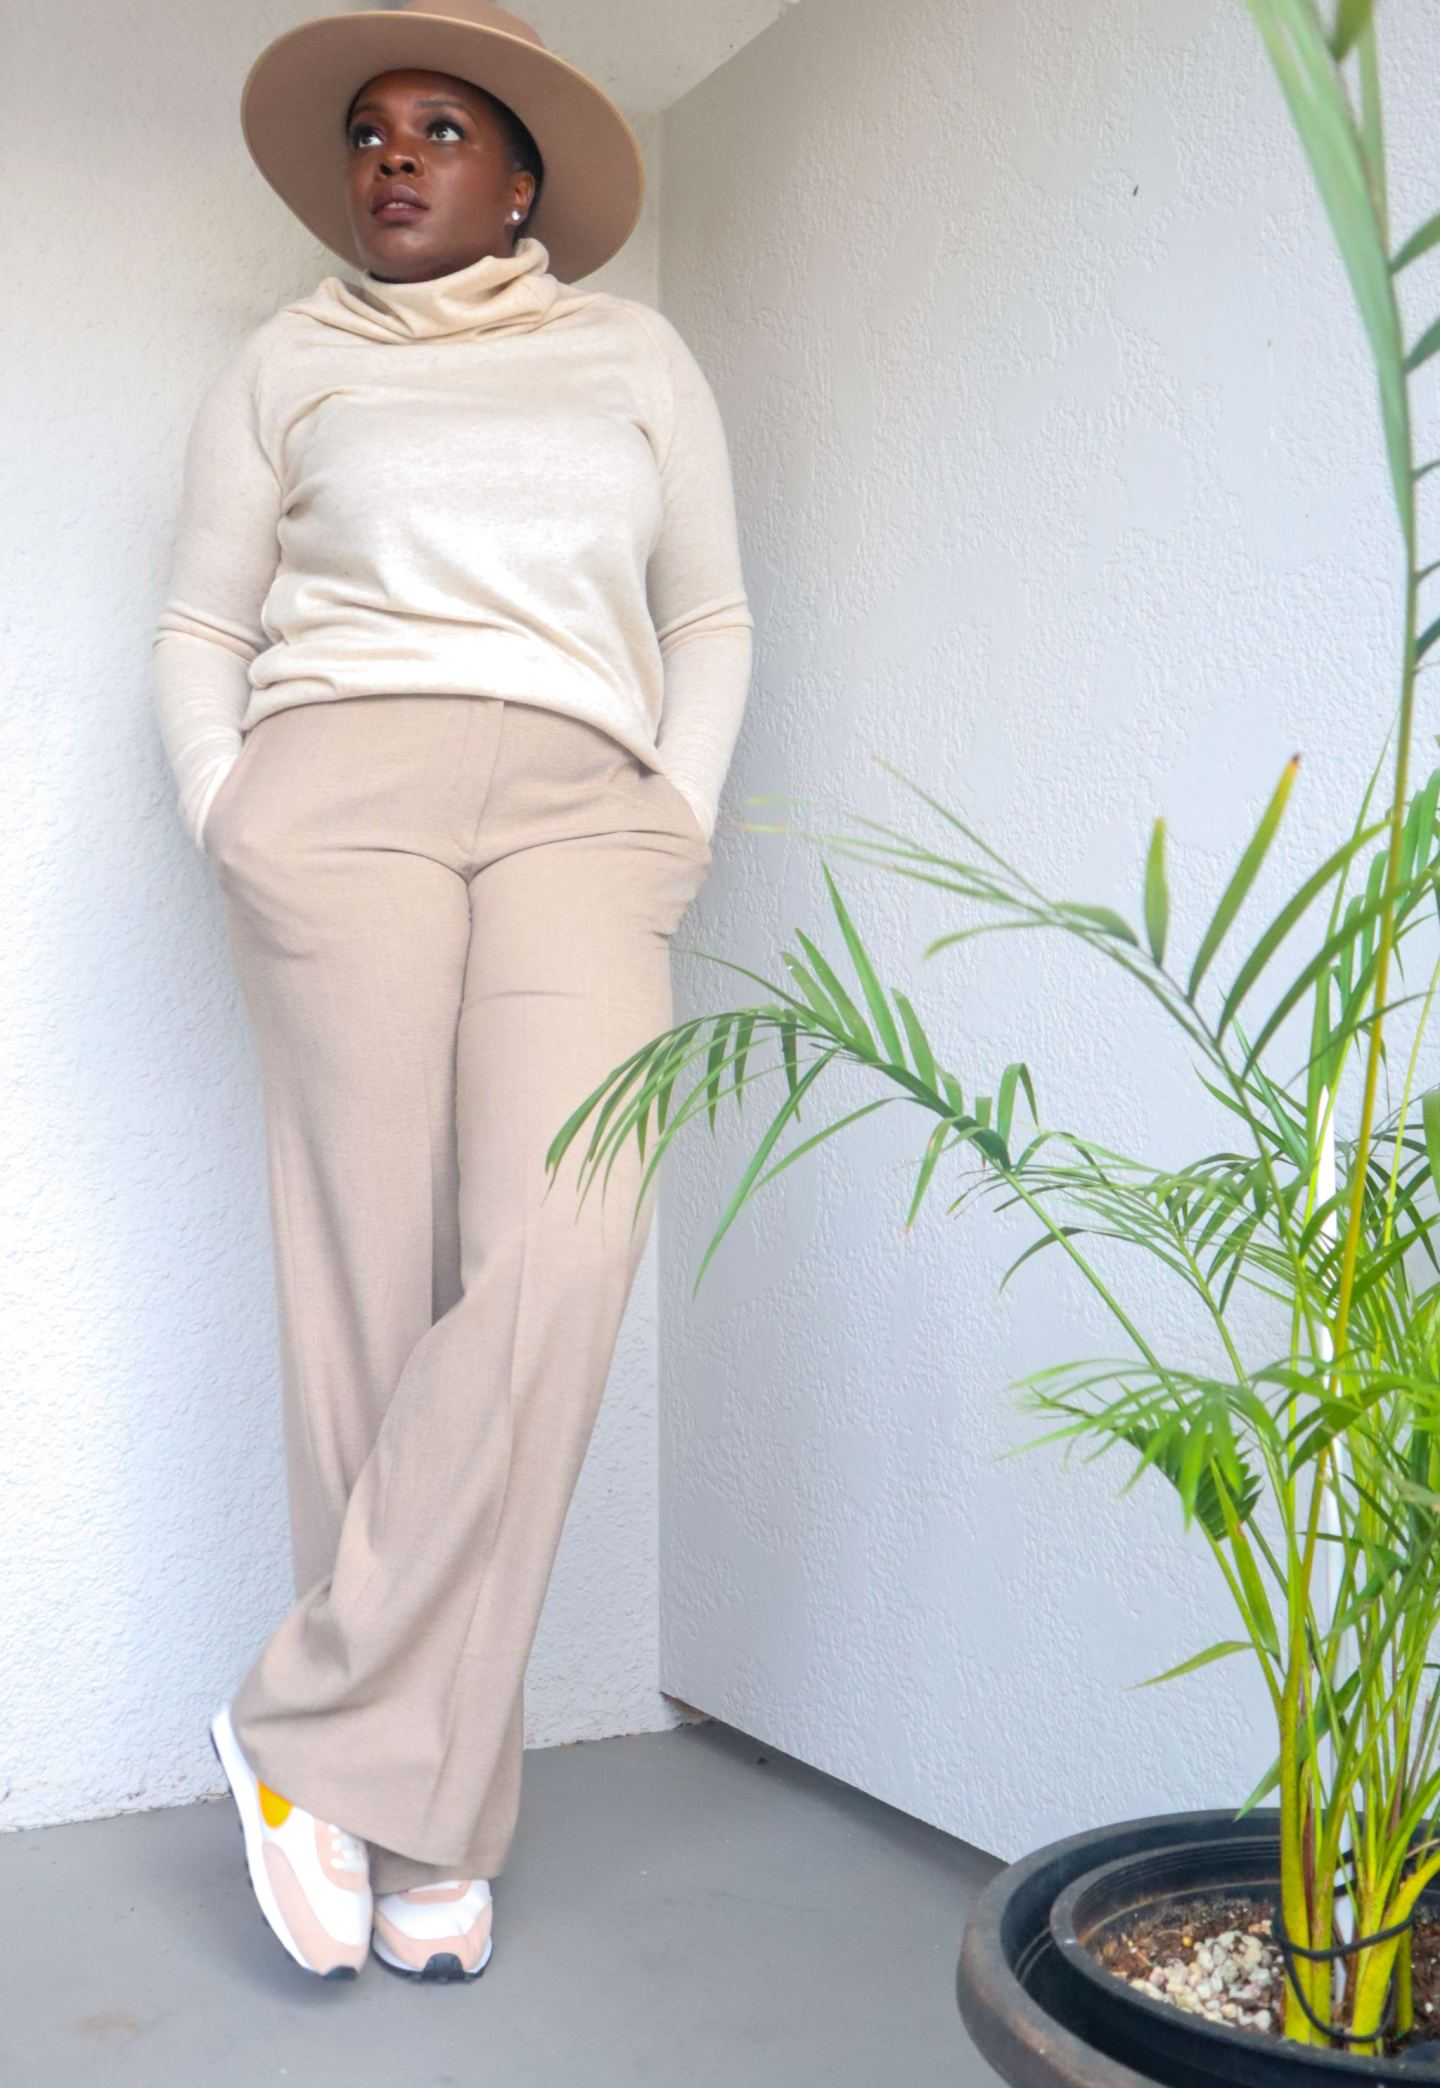 Neutrals on neutrals long sleeve cashmere sweater and trousers by a palm plant.